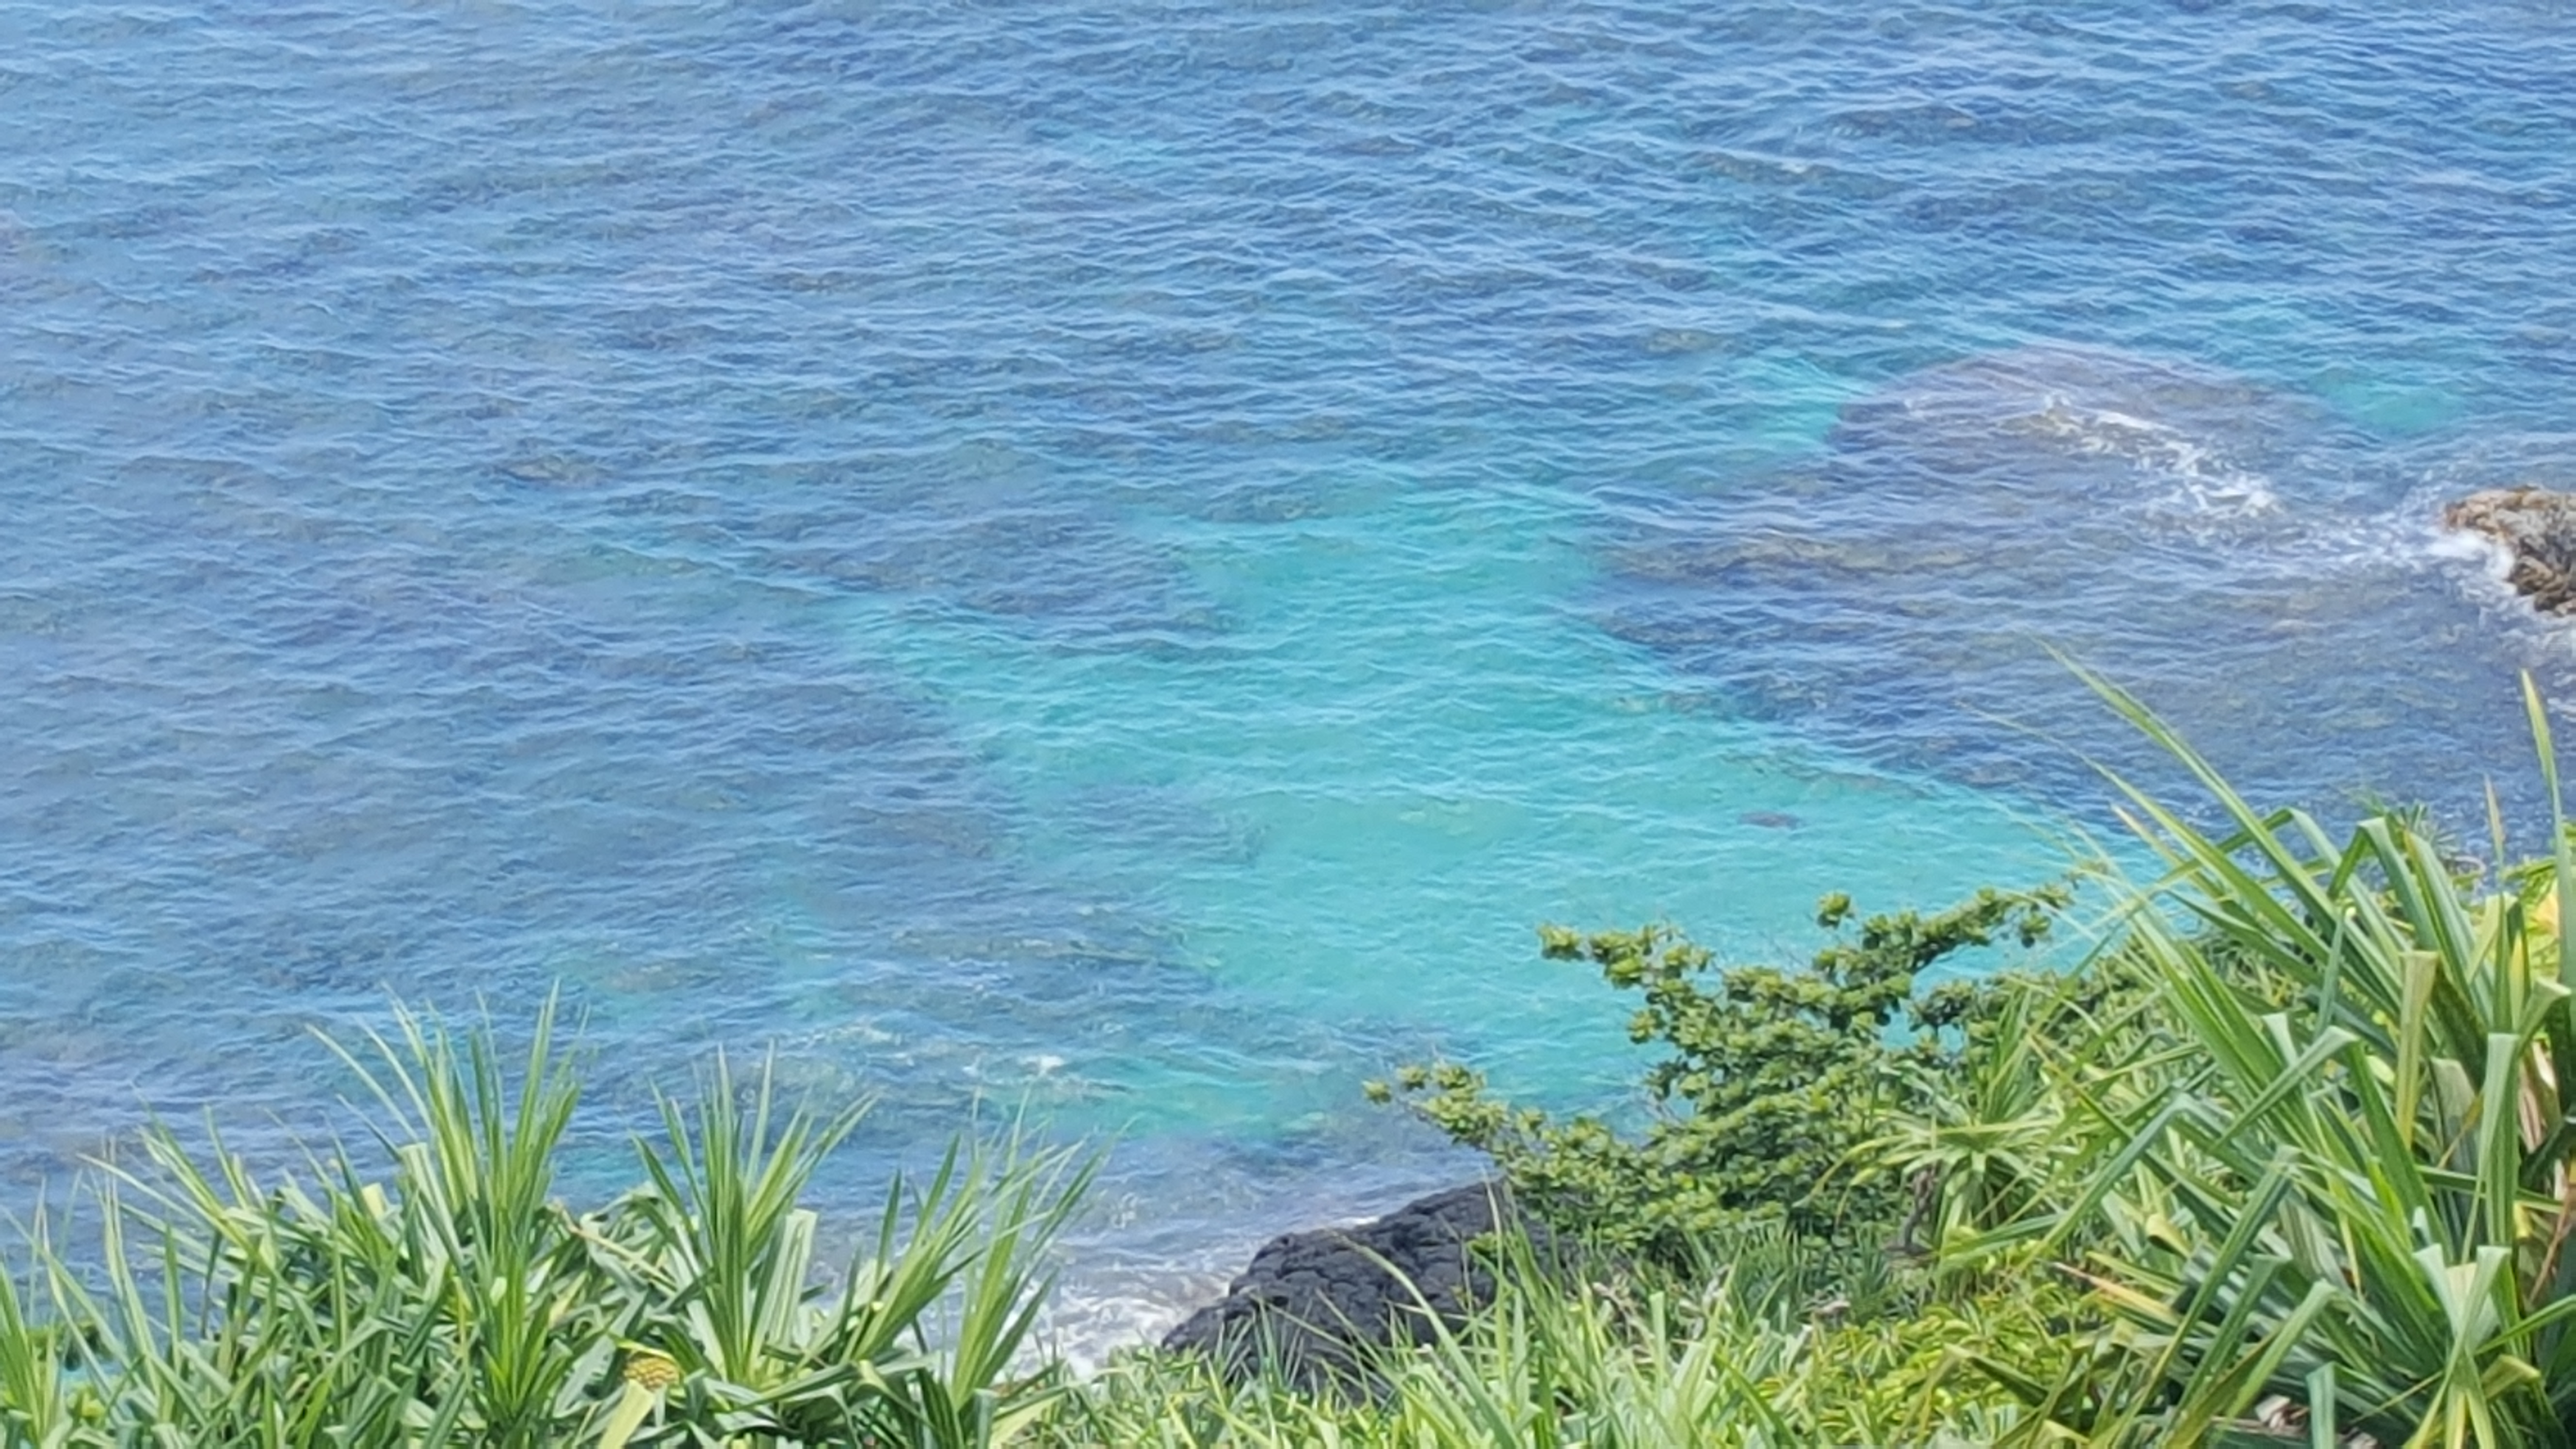 Sea turtles galore at The Cliffs!